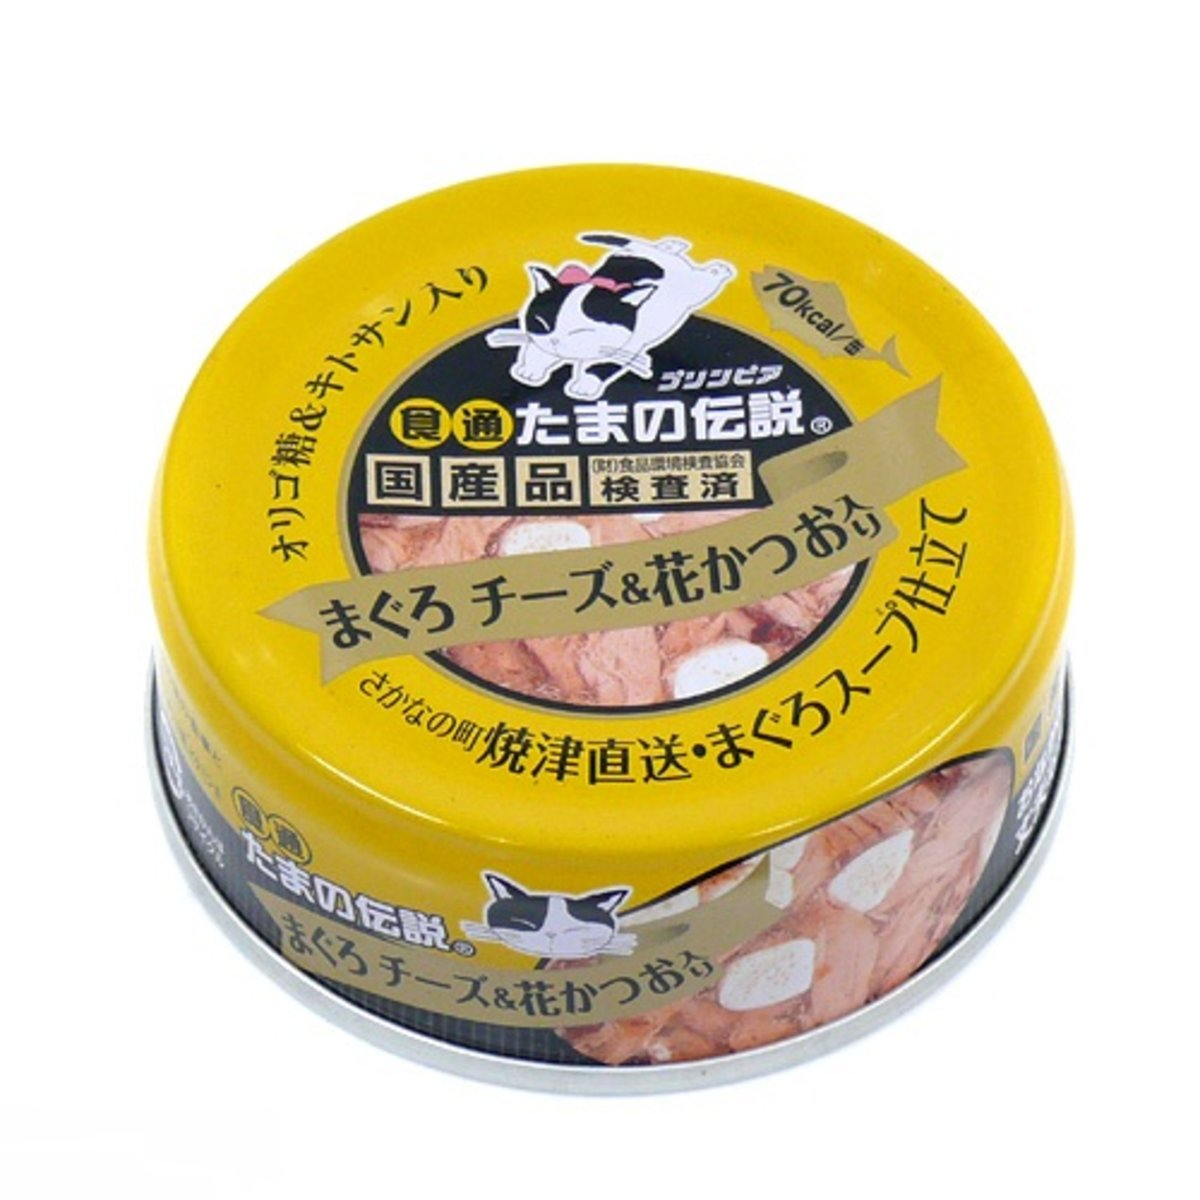 SANYO Grill White Tuna, Seaweed, Bonito & Cheese 80g (20044) (Parallel Import from Japan)